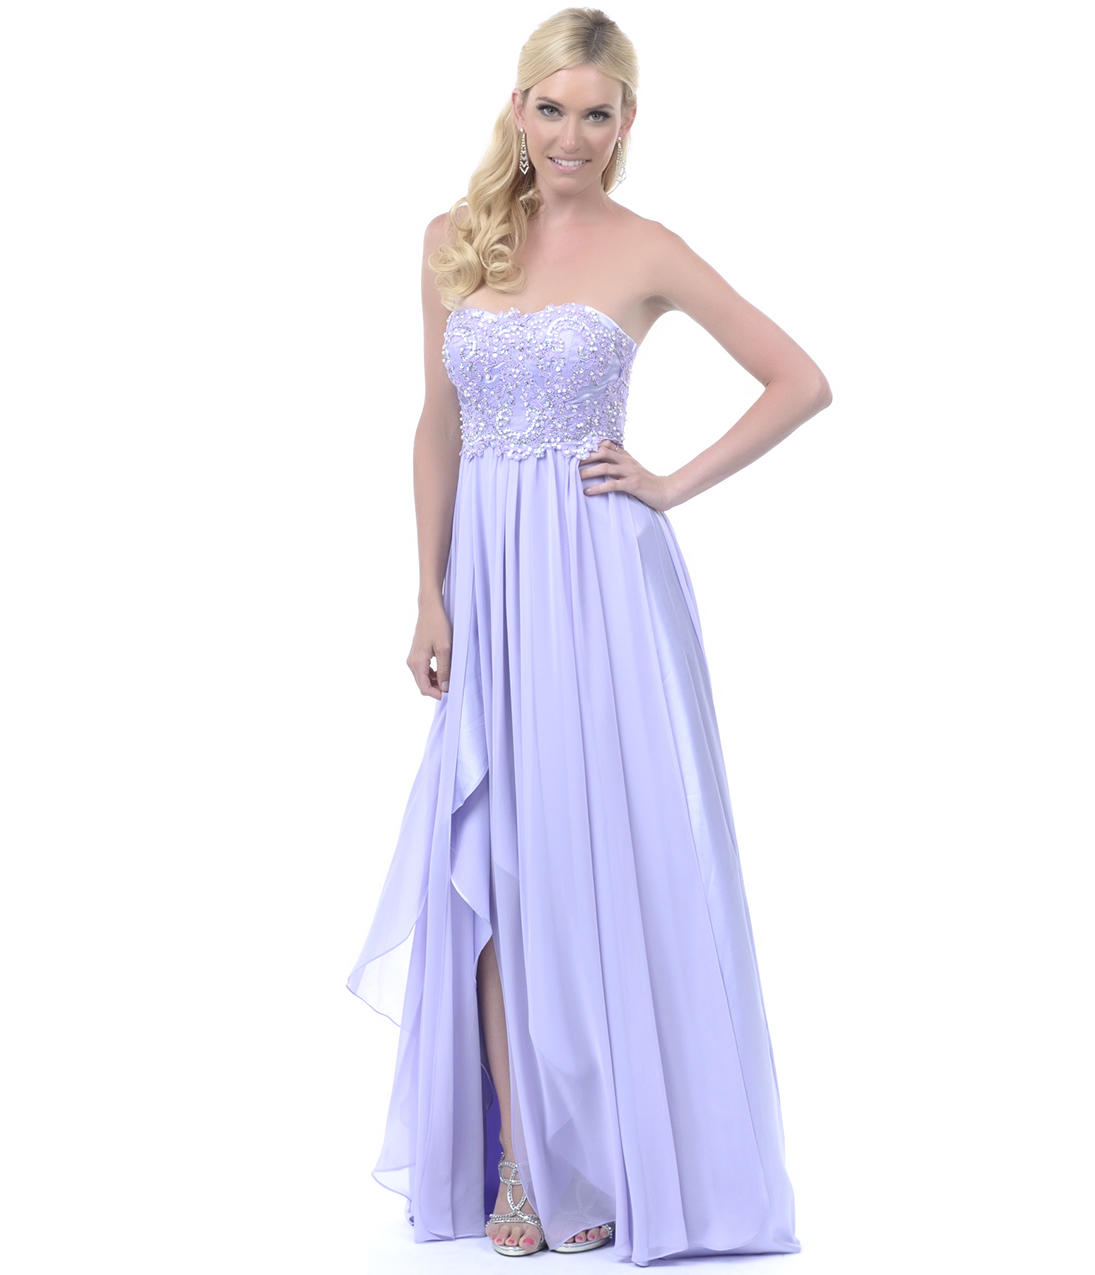 2013 Homecoming Dresses - Lilac Sequined from Unique Vintage